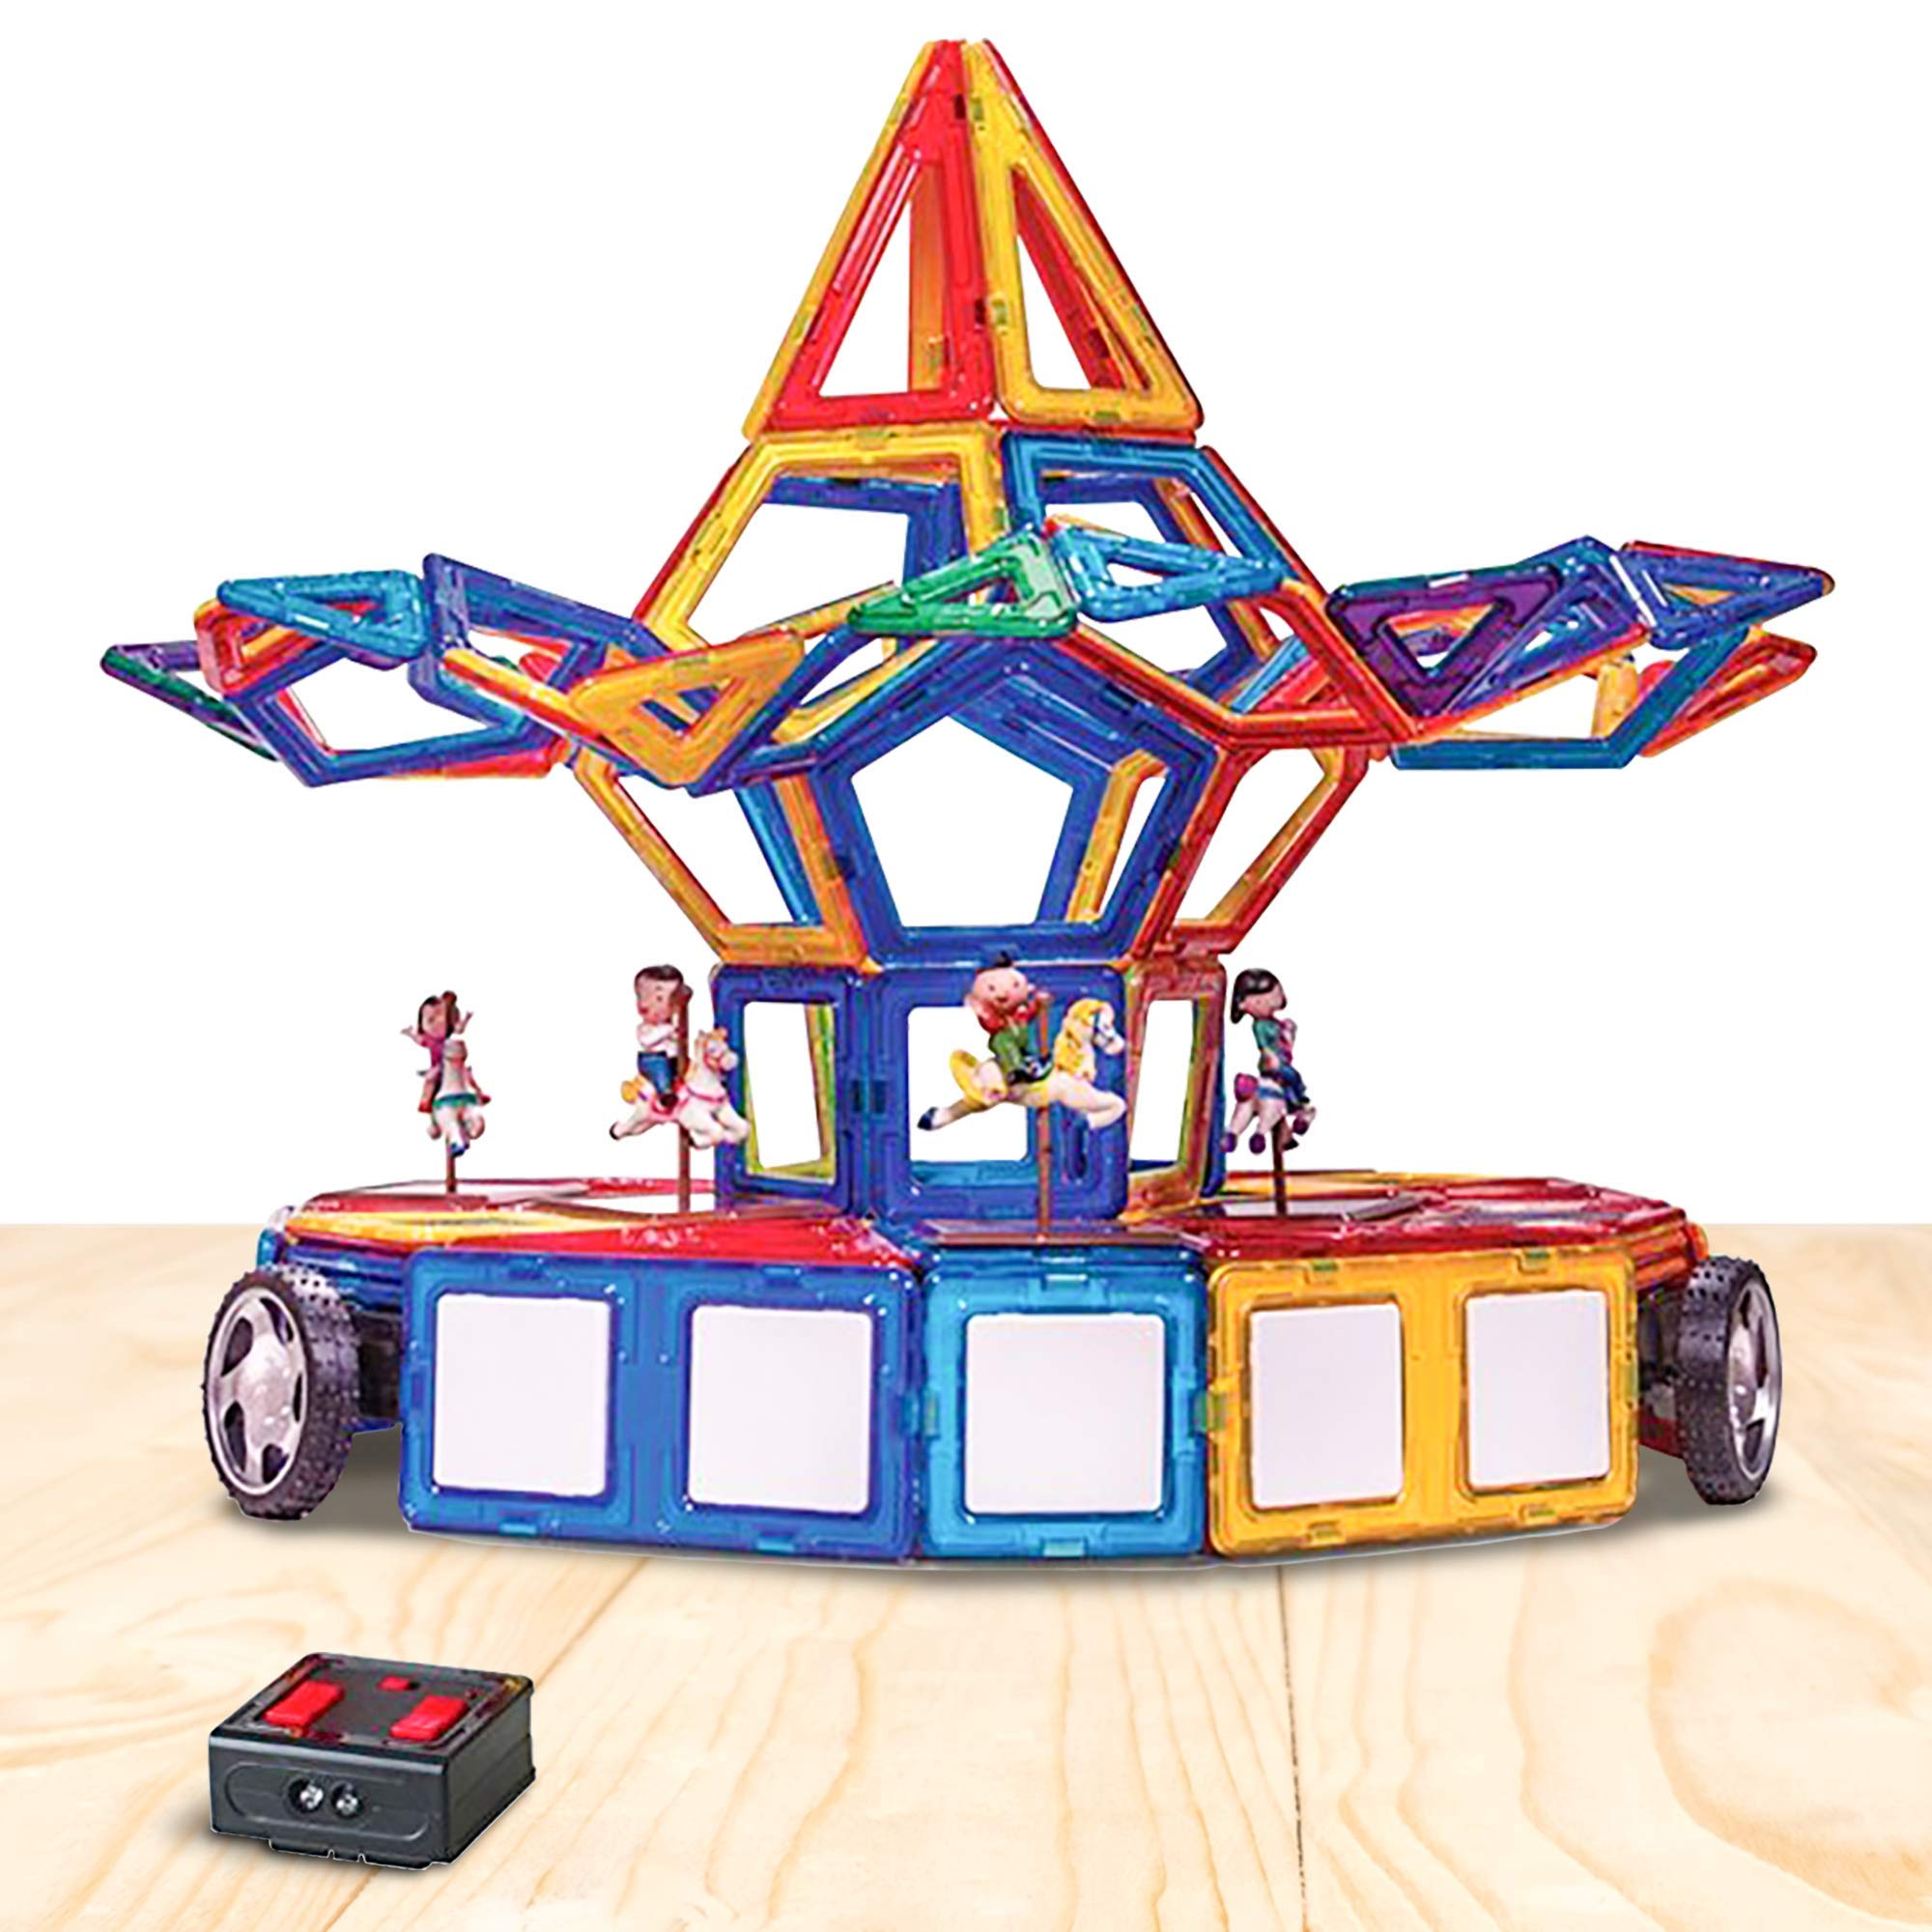 ArtCreativity Mega Magnetic Tiles Building Blocks Set (125-Piece) | Kids' Magnet Toy Carnival Construction Kit | Over 80 Shapes, Wheels, Remote Control, Storage Box and More | Educational STEM Toy by ArtCreativity (Image #3)